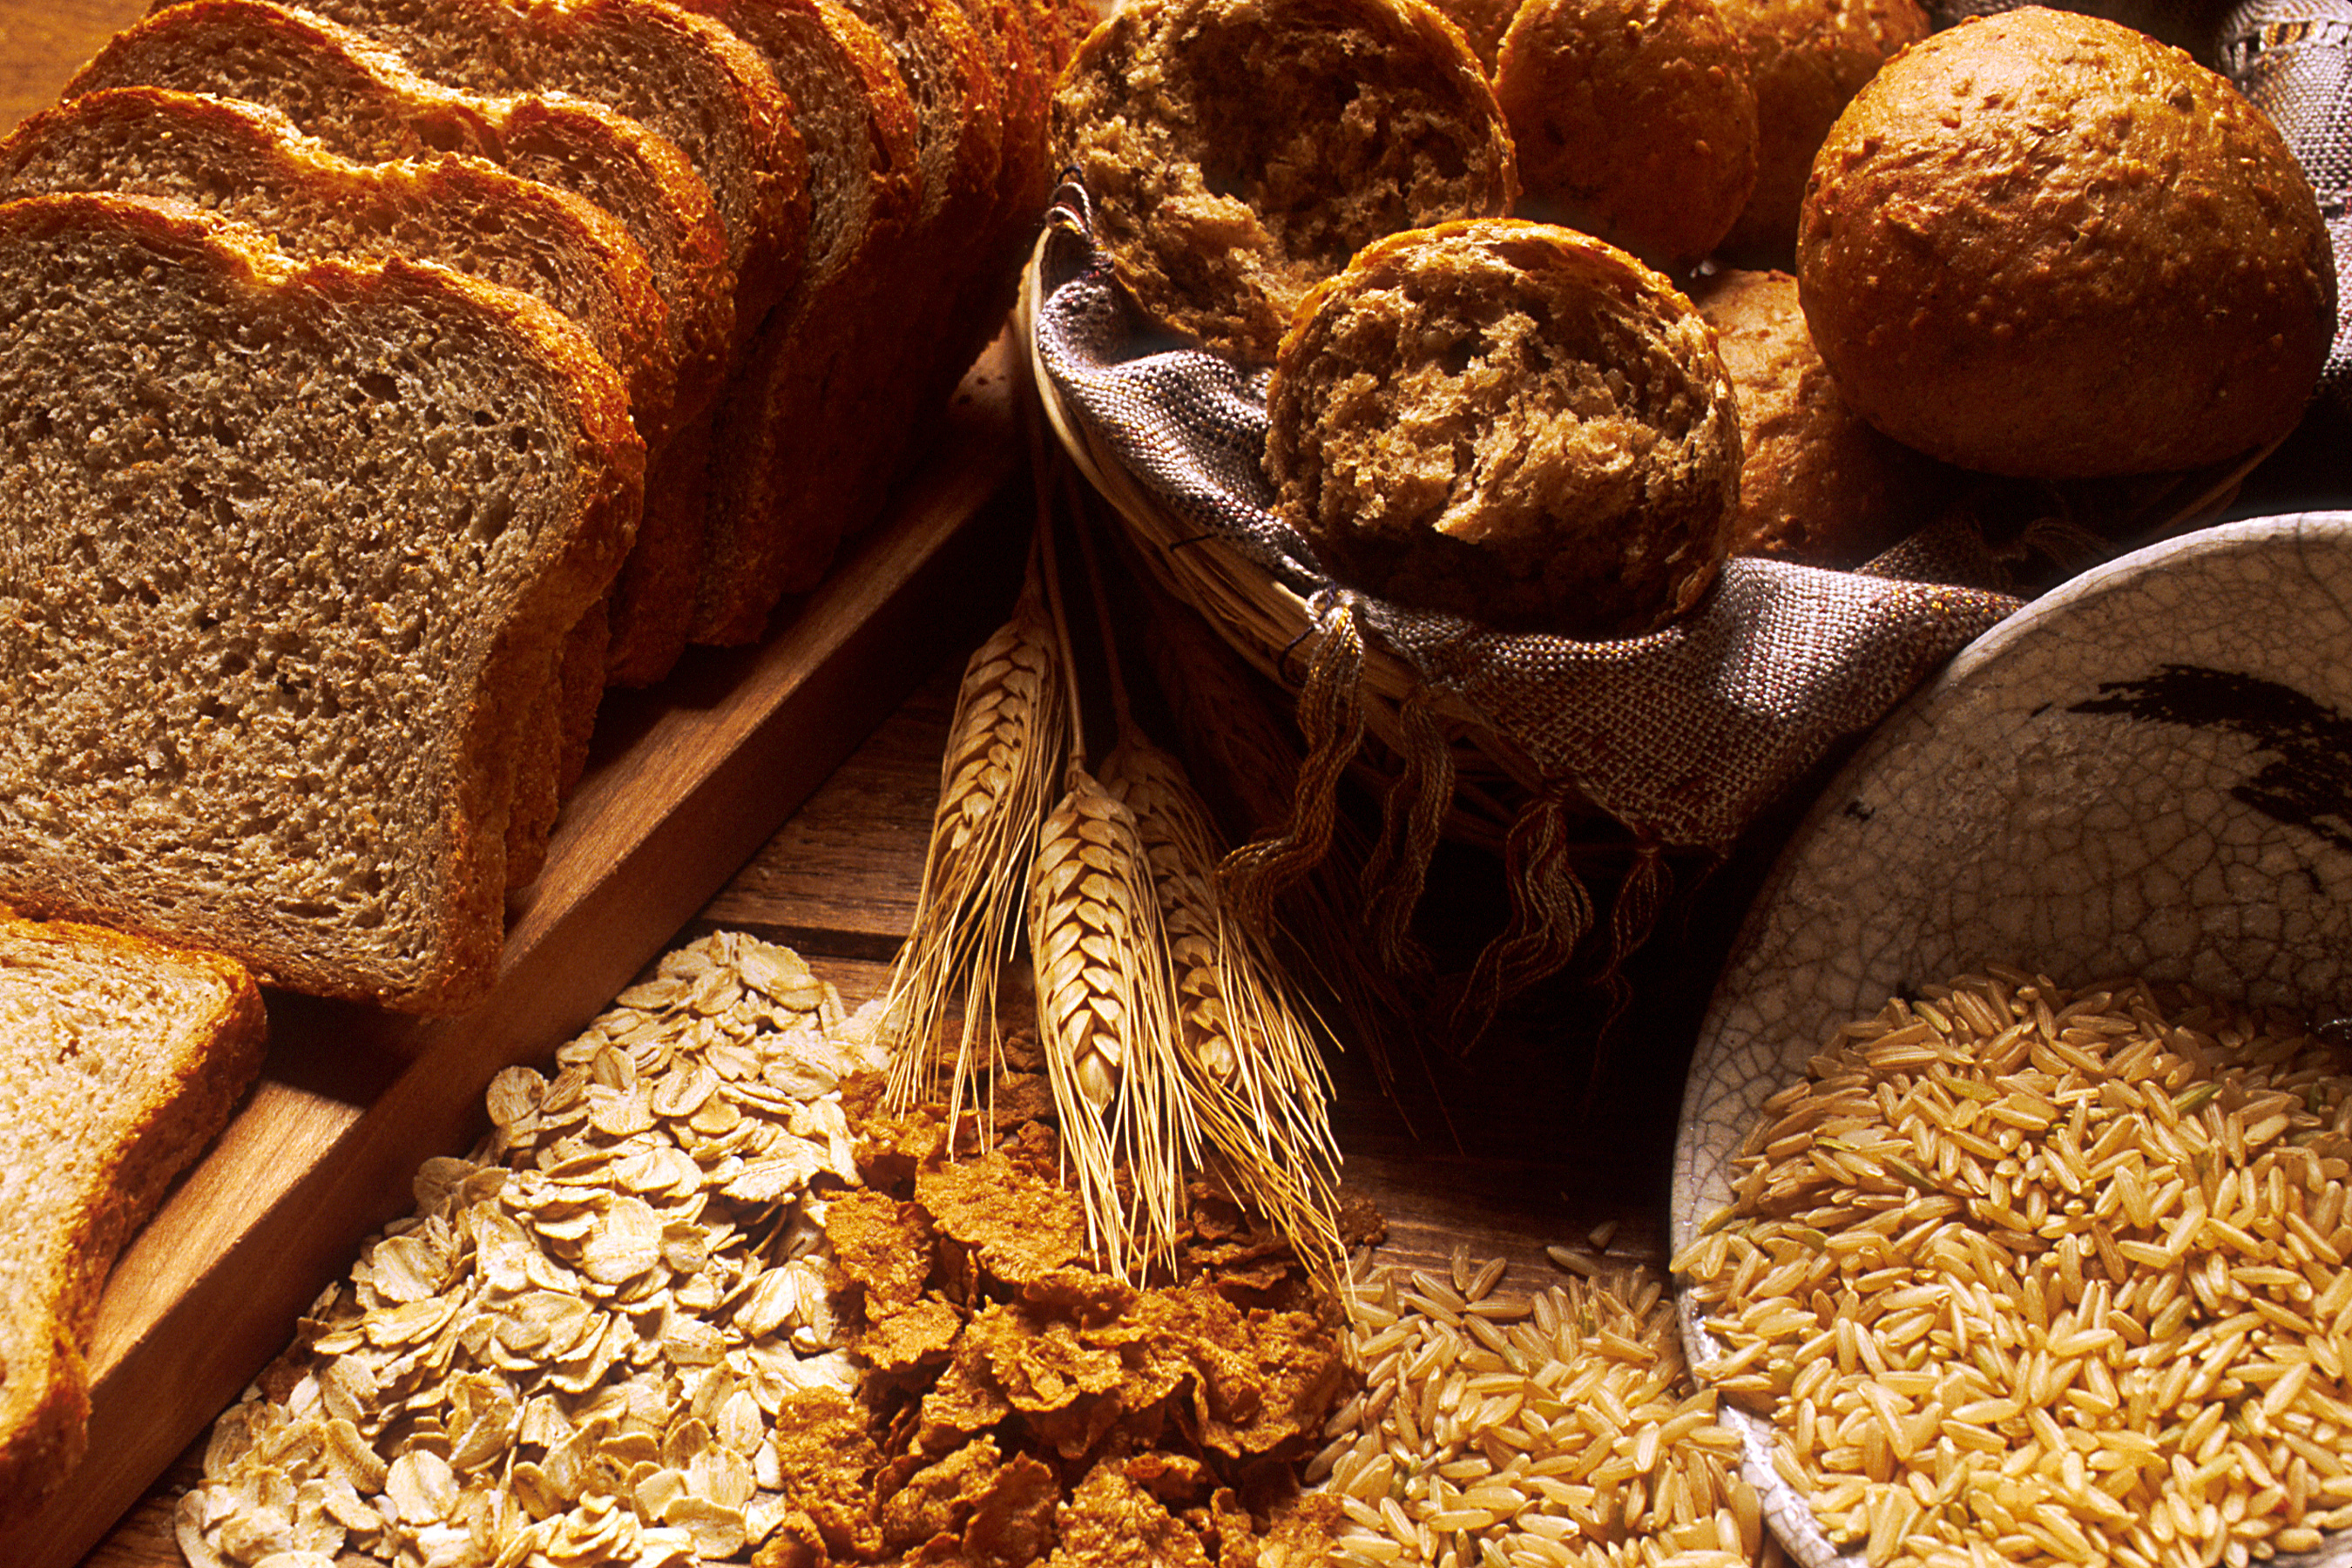 File:Bread and grains.jpg - Wikimedia Commons: commons.wikimedia.org/wiki/File:Bread_and_grains.jpg